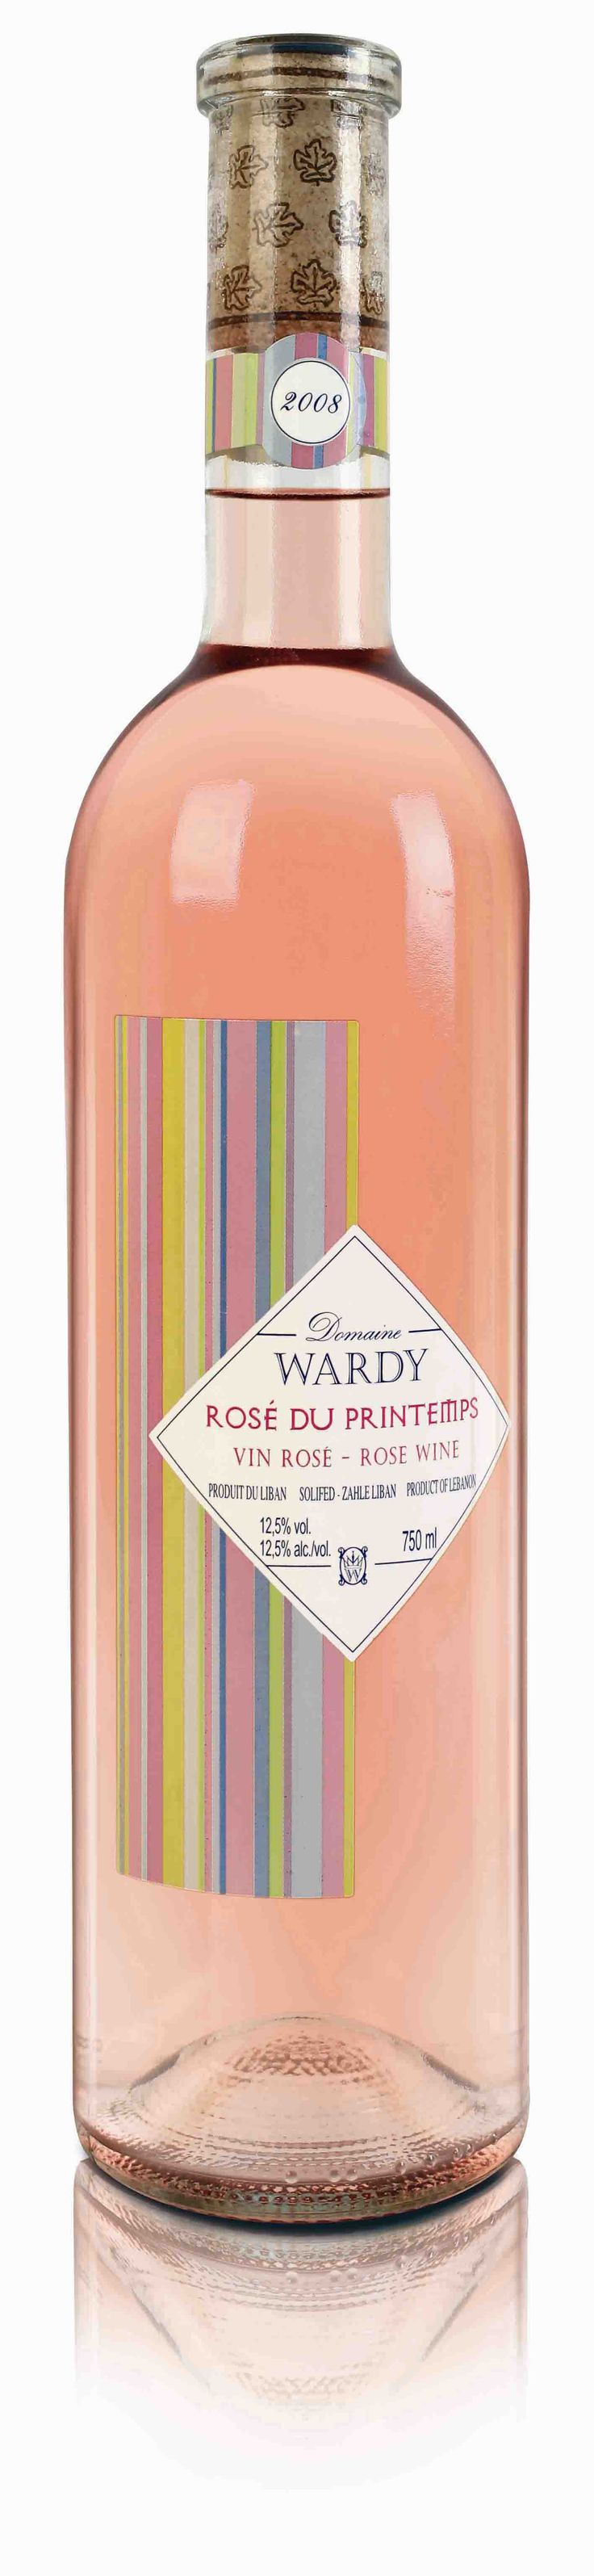 Made from Syrah and Cabernet Sauvignon, Rosé du Printemps is a refreshingly deliciously fruity rosé with attractive berry flavours. Best served chilled (8-10 C). Try with beef, pasta and cheese.